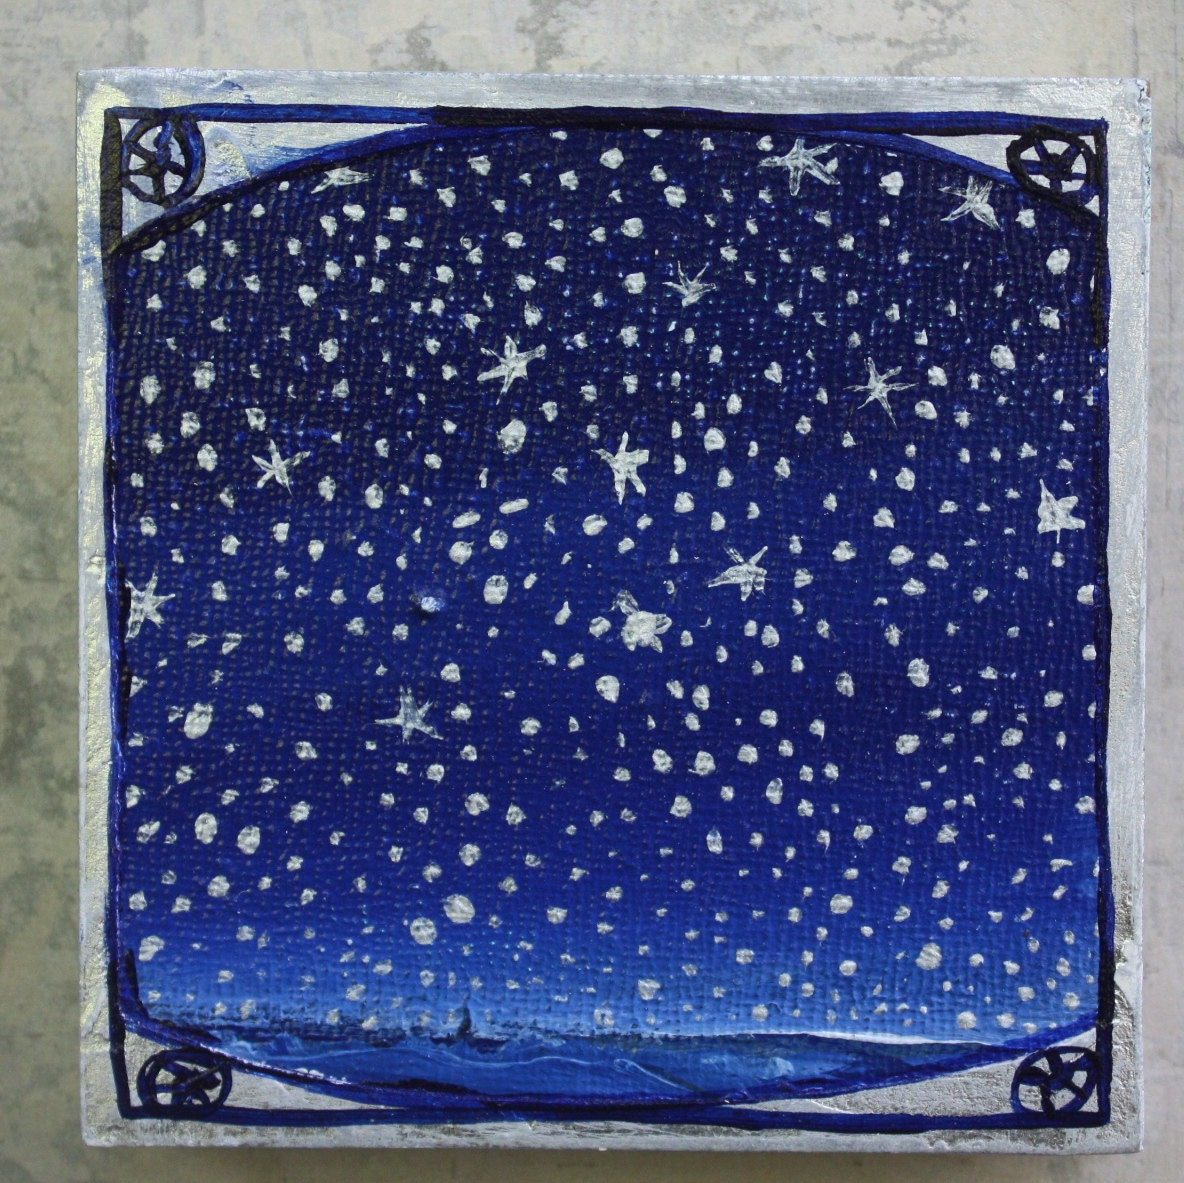 "Stars over water 4"" square - roseymorris"